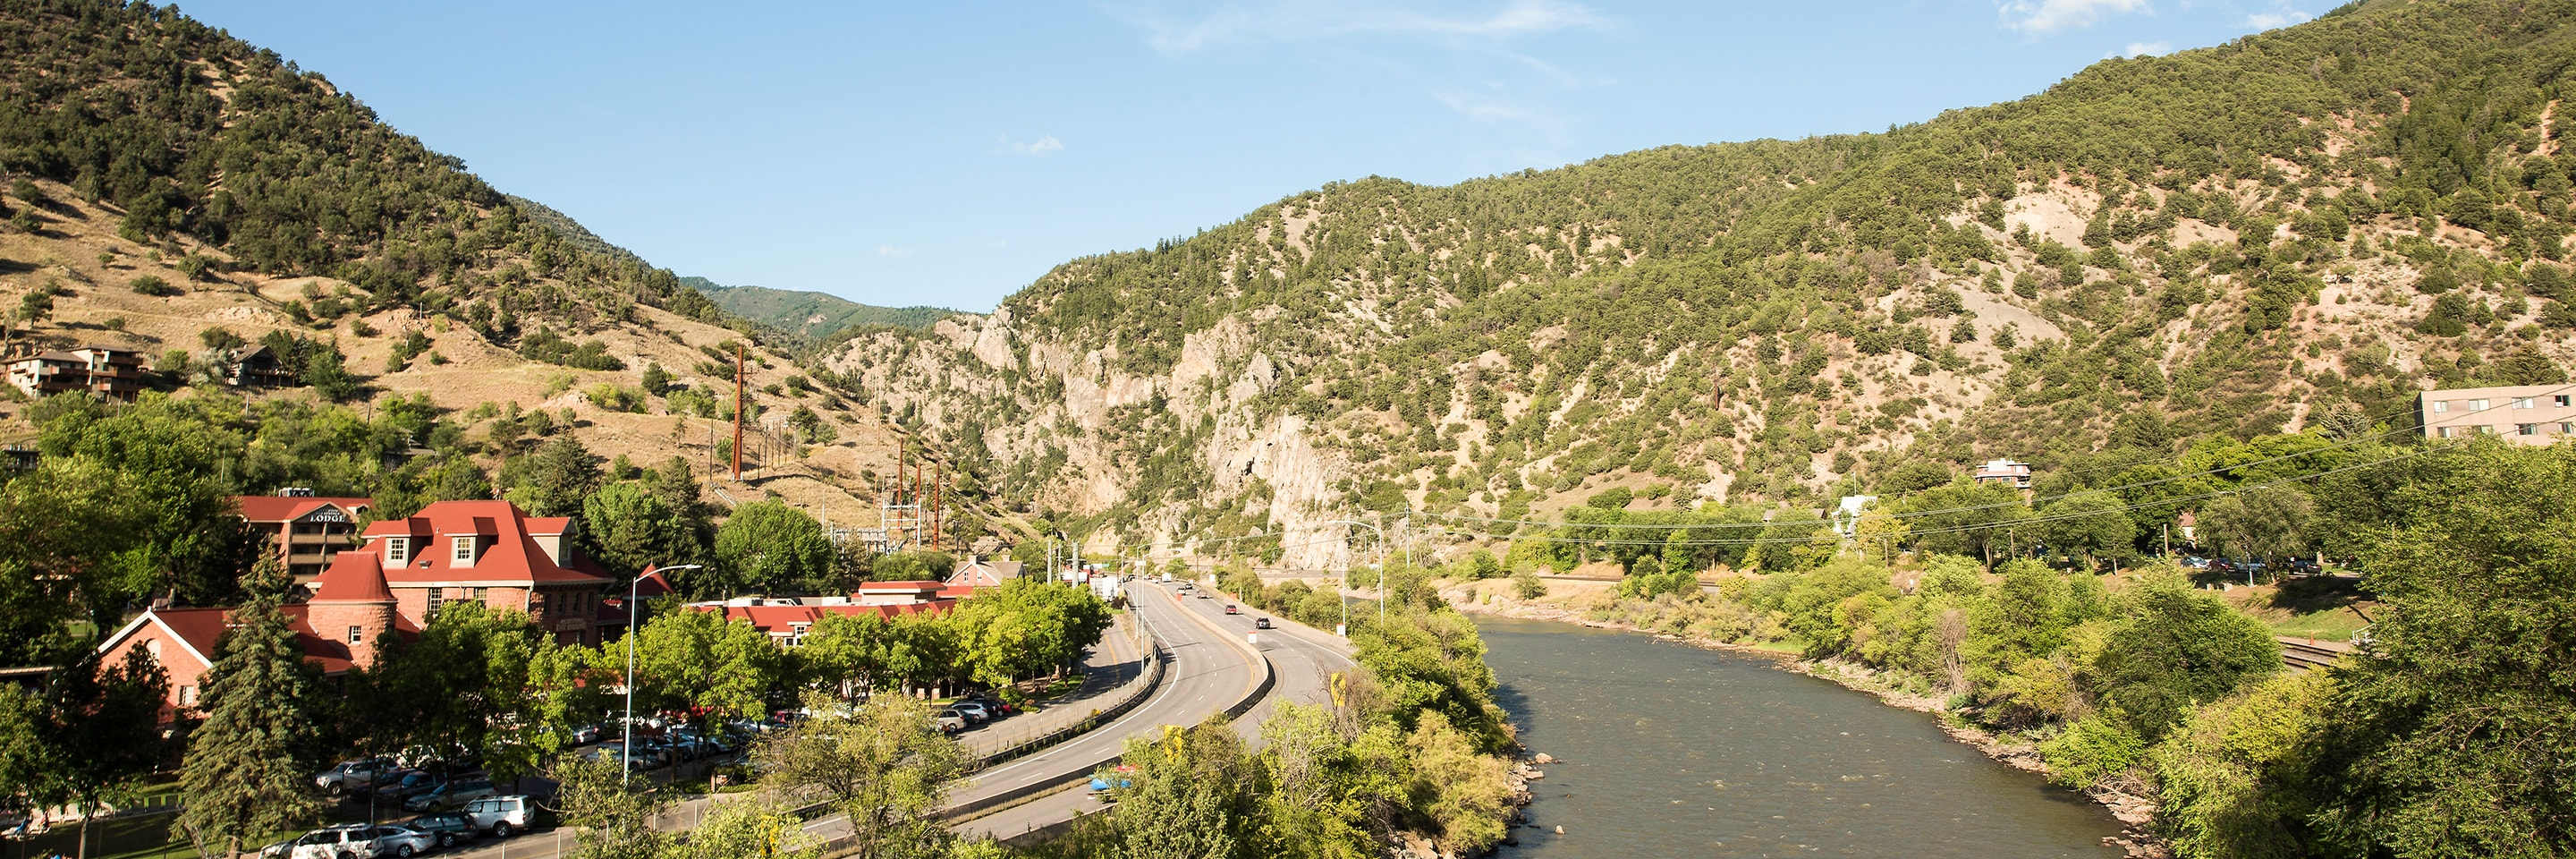 Hôtels à Glenwood Springs